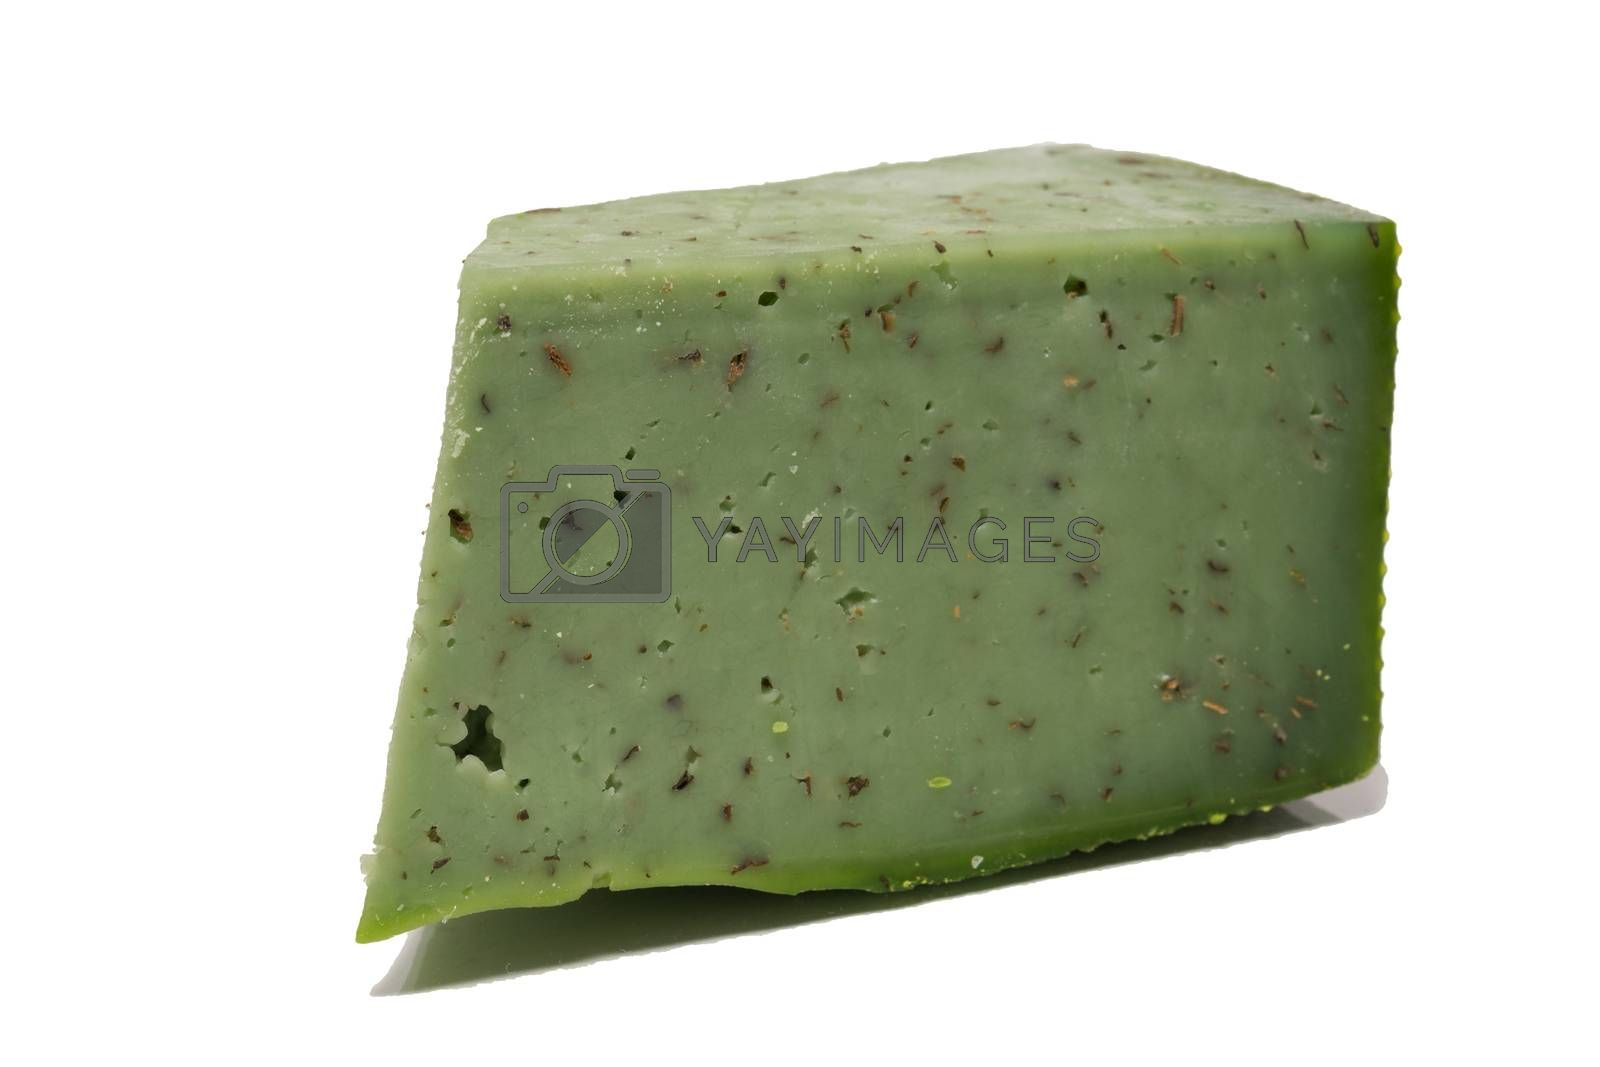 The photograph depicts cheese on white background